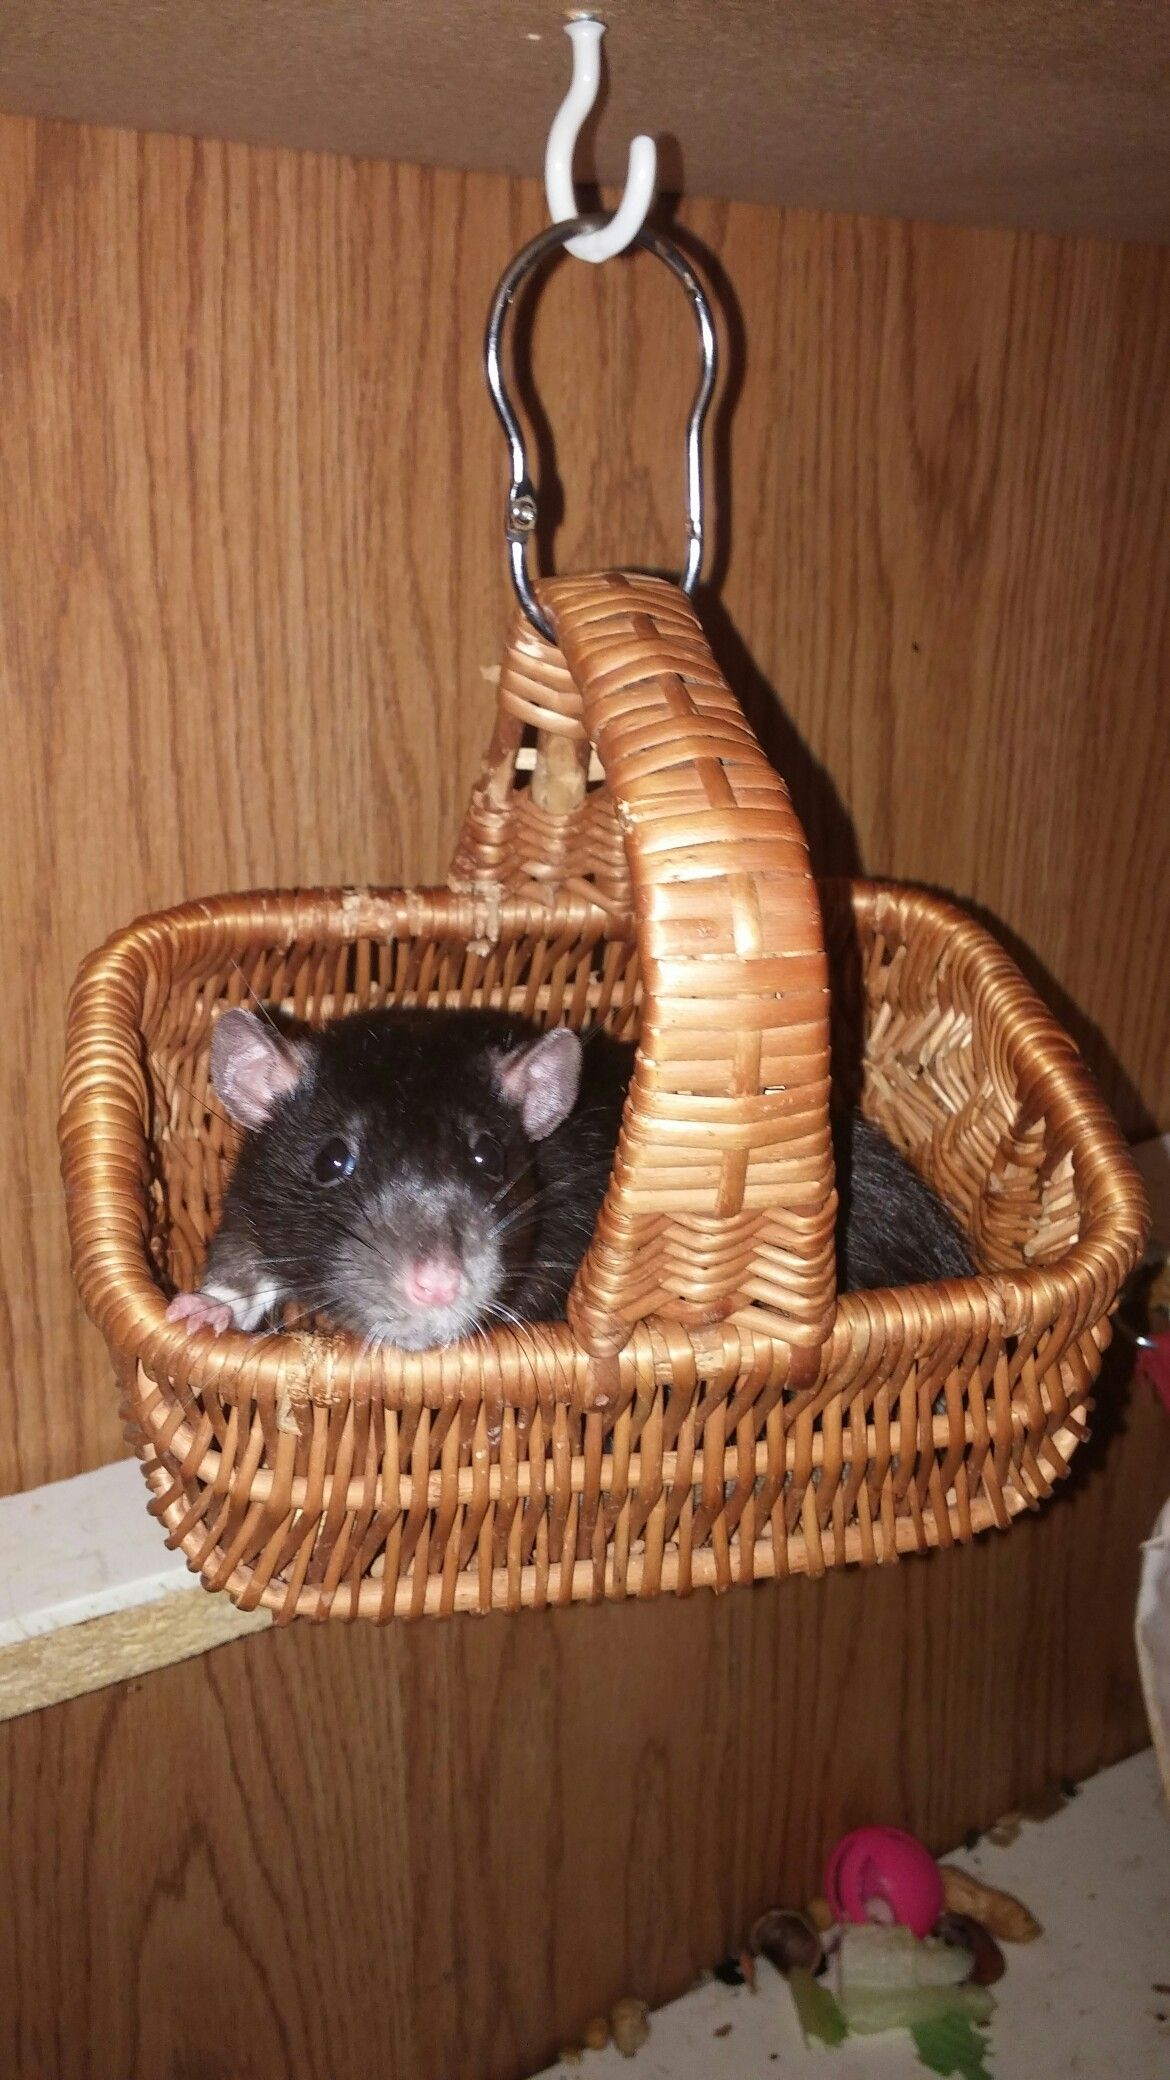 Hanging out in a basket bed. Pet rats, Decorative wicker